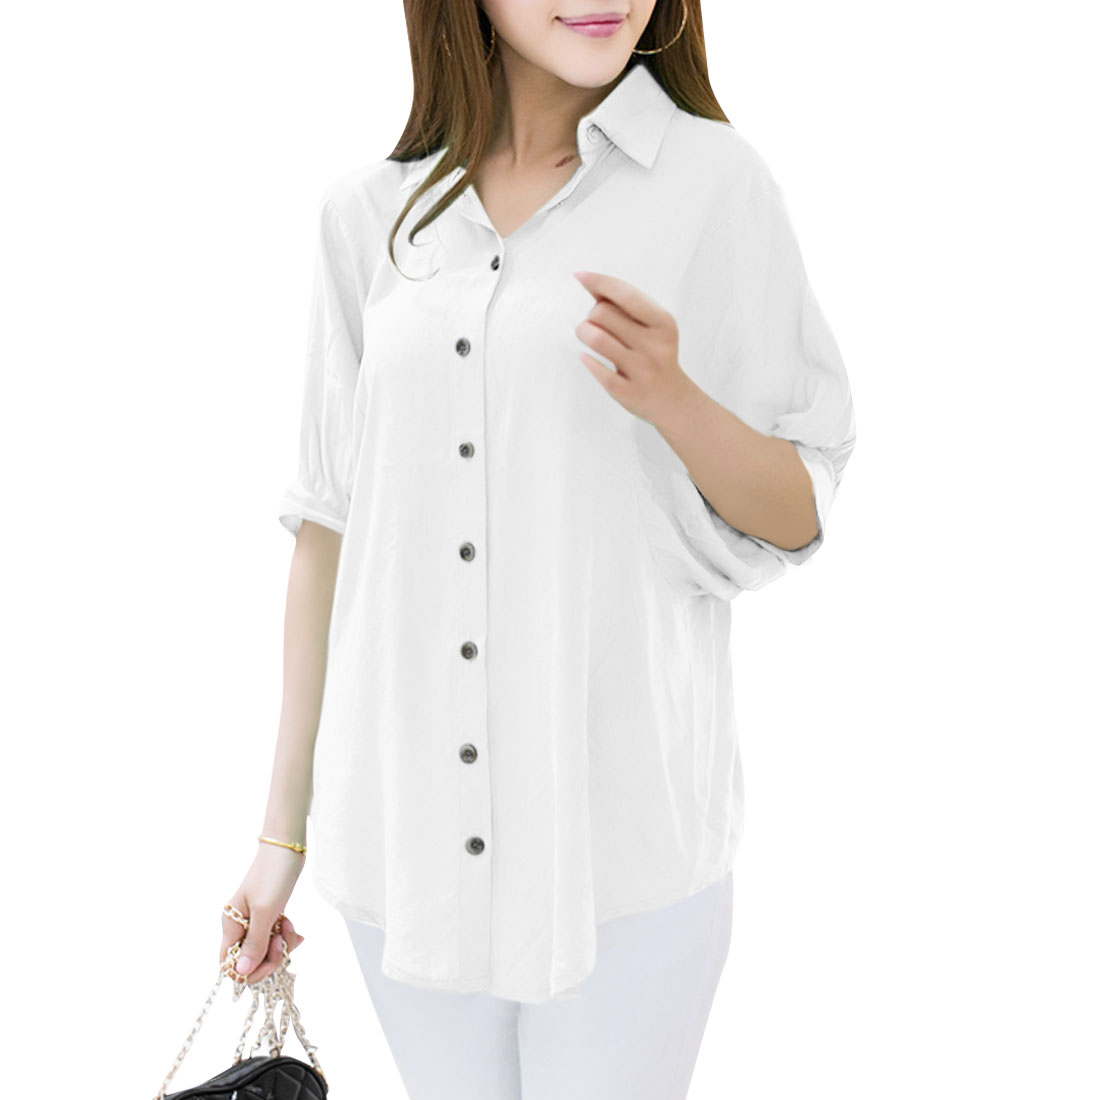 Women Button Front Batwing Sleeve Leisure Top Shirt White M